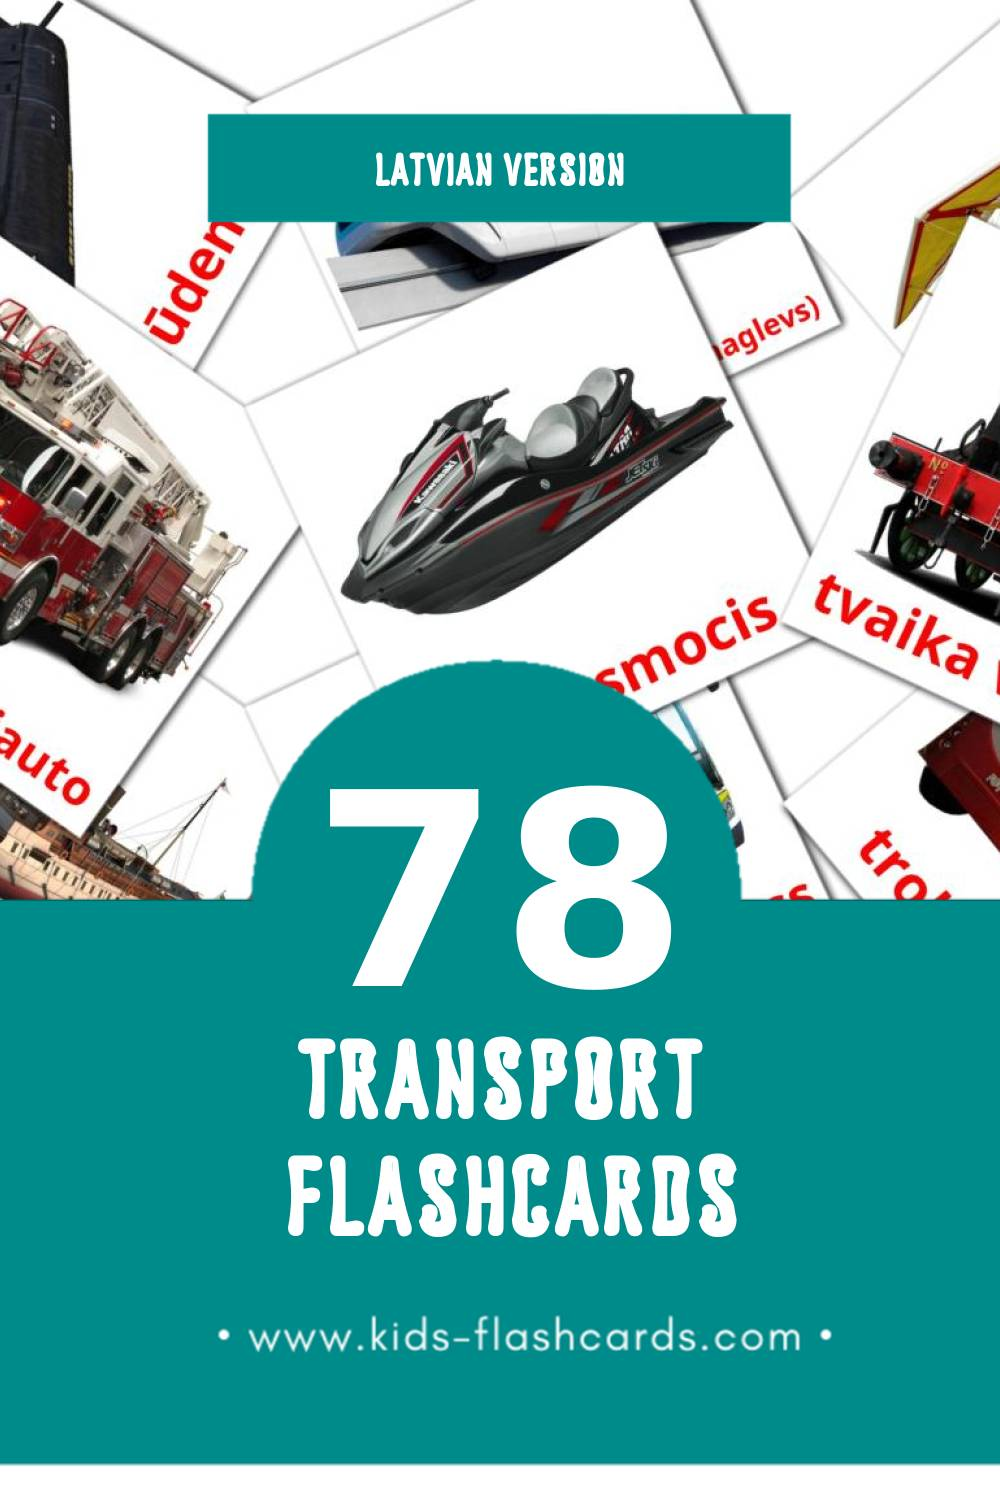 Visual Transports Flashcards for Toddlers (78 cards in Latvian)